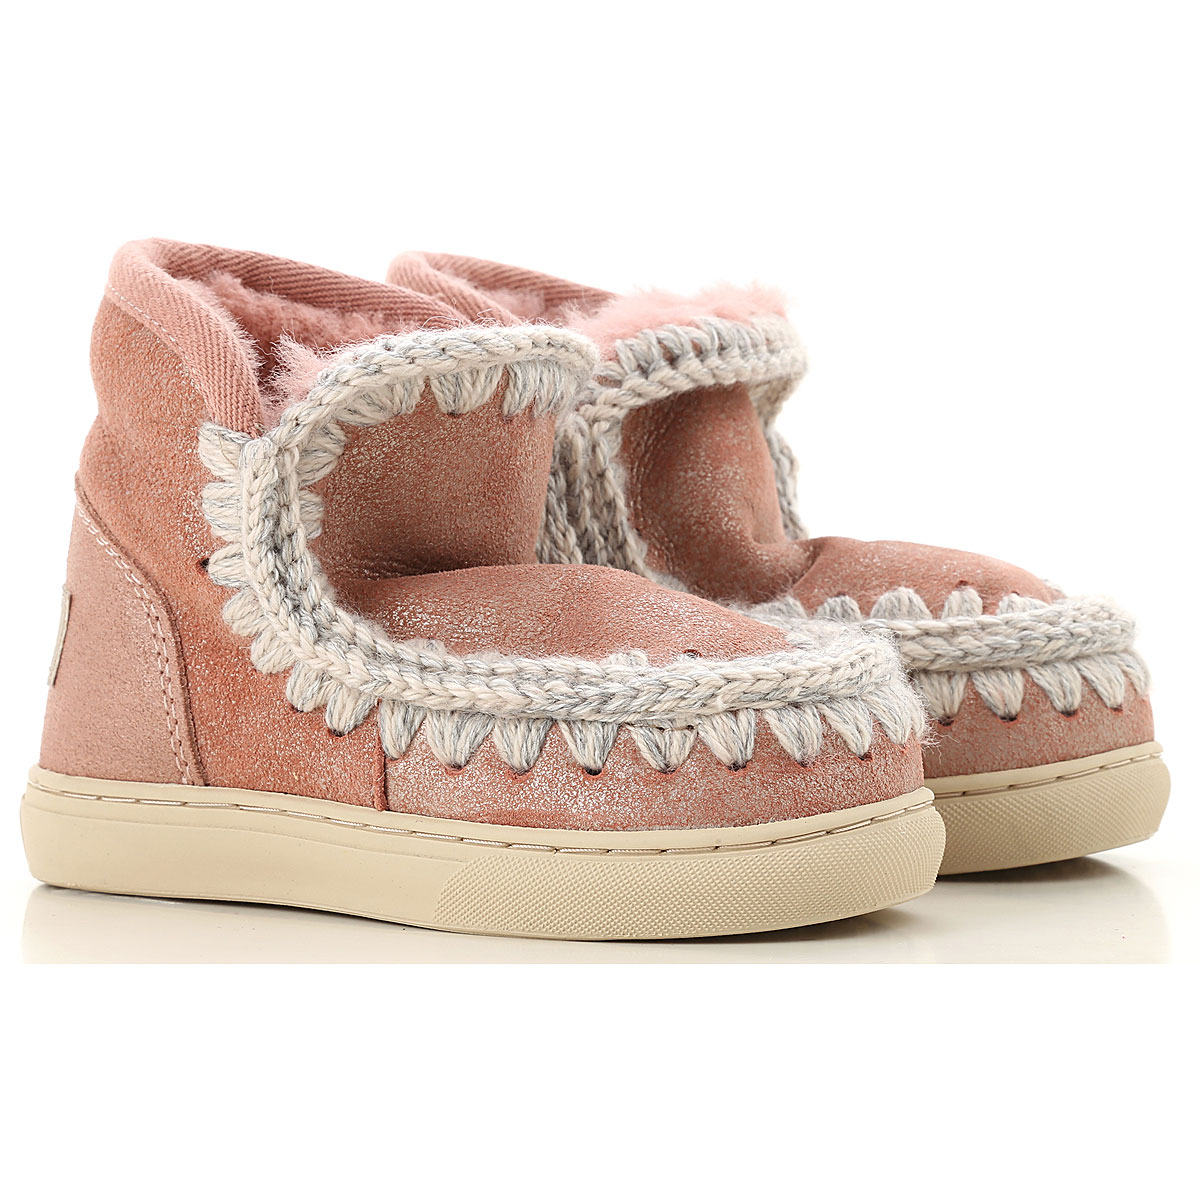 Image of Mou Kids Shoes for Girls, Pink, Suede leather, 2017, 26 27 28 29 30